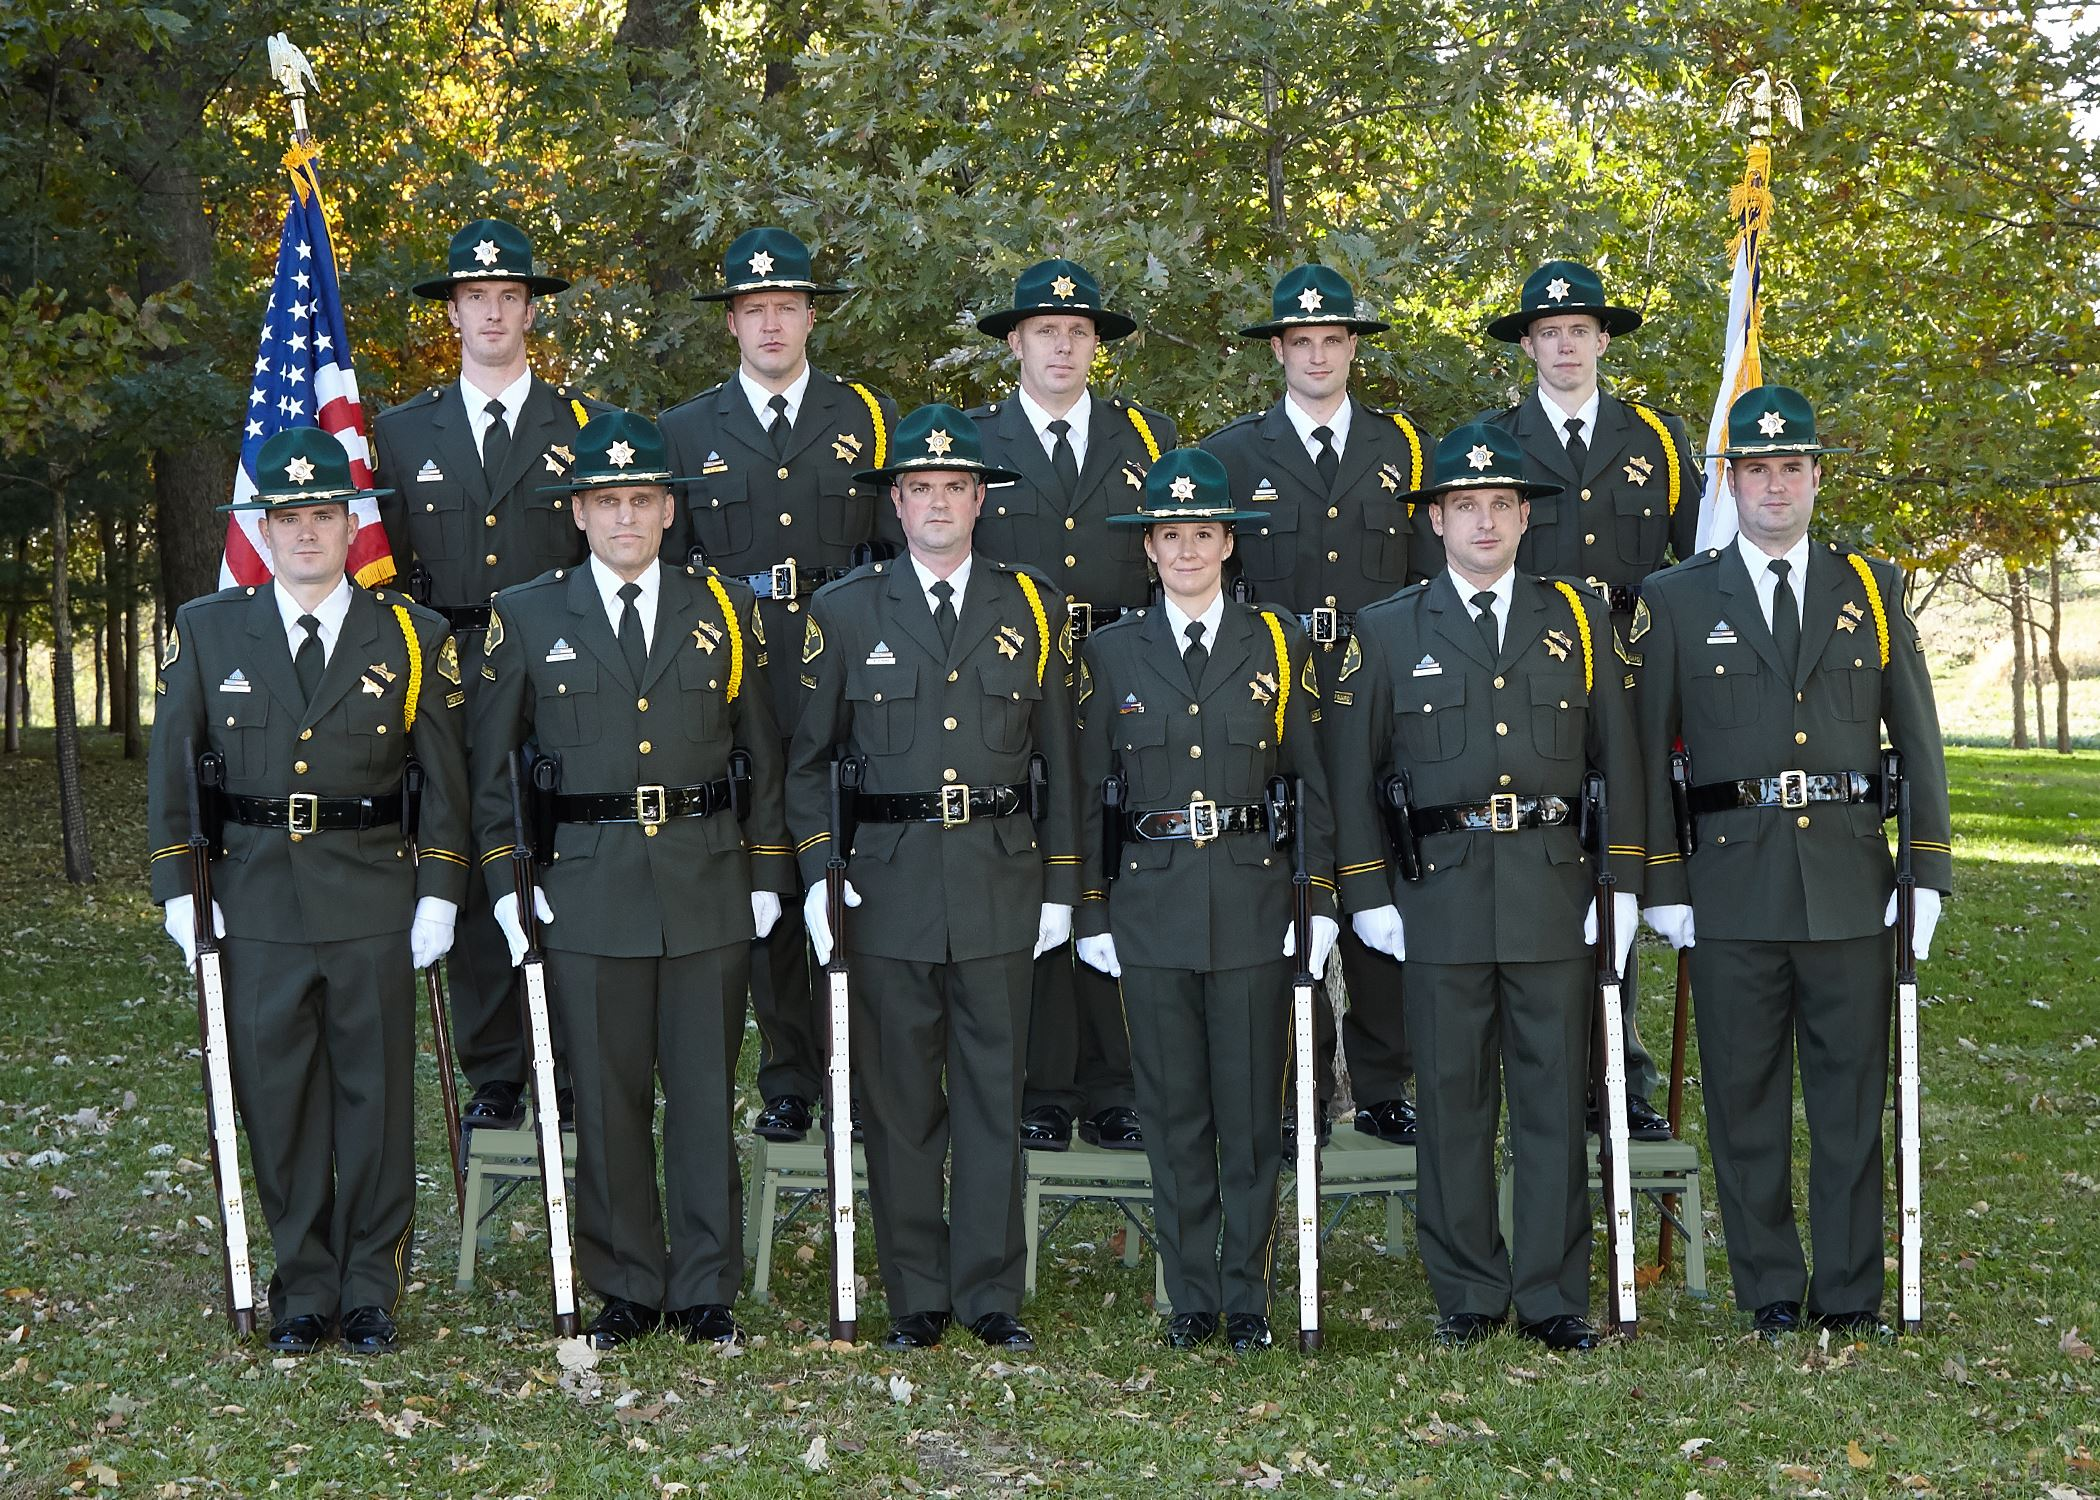 Linn County Sheriff's Office Honor Guard